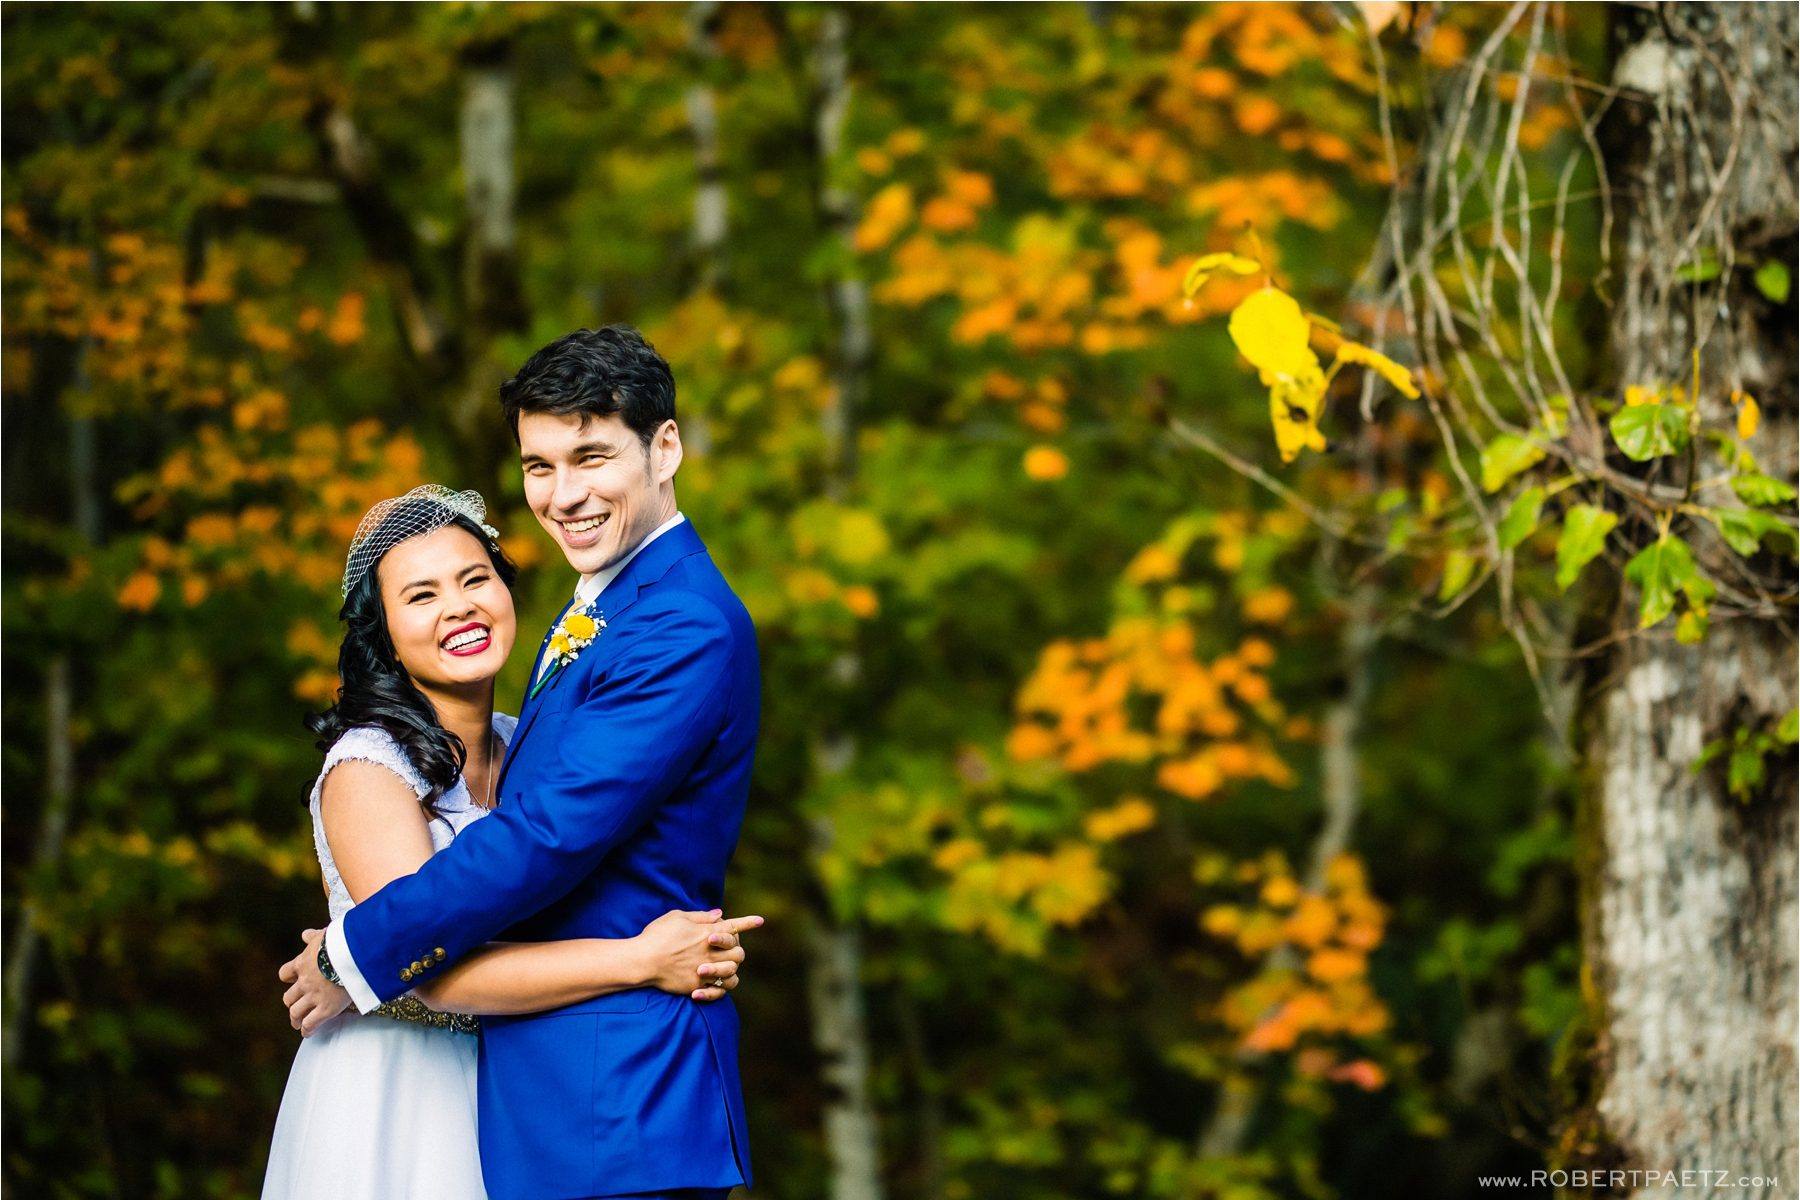 A fall micro wedding at the Wallace Falls Lodge in Washington (near Seattle), photographed by the destination wedding photographer, Robert Paetz.